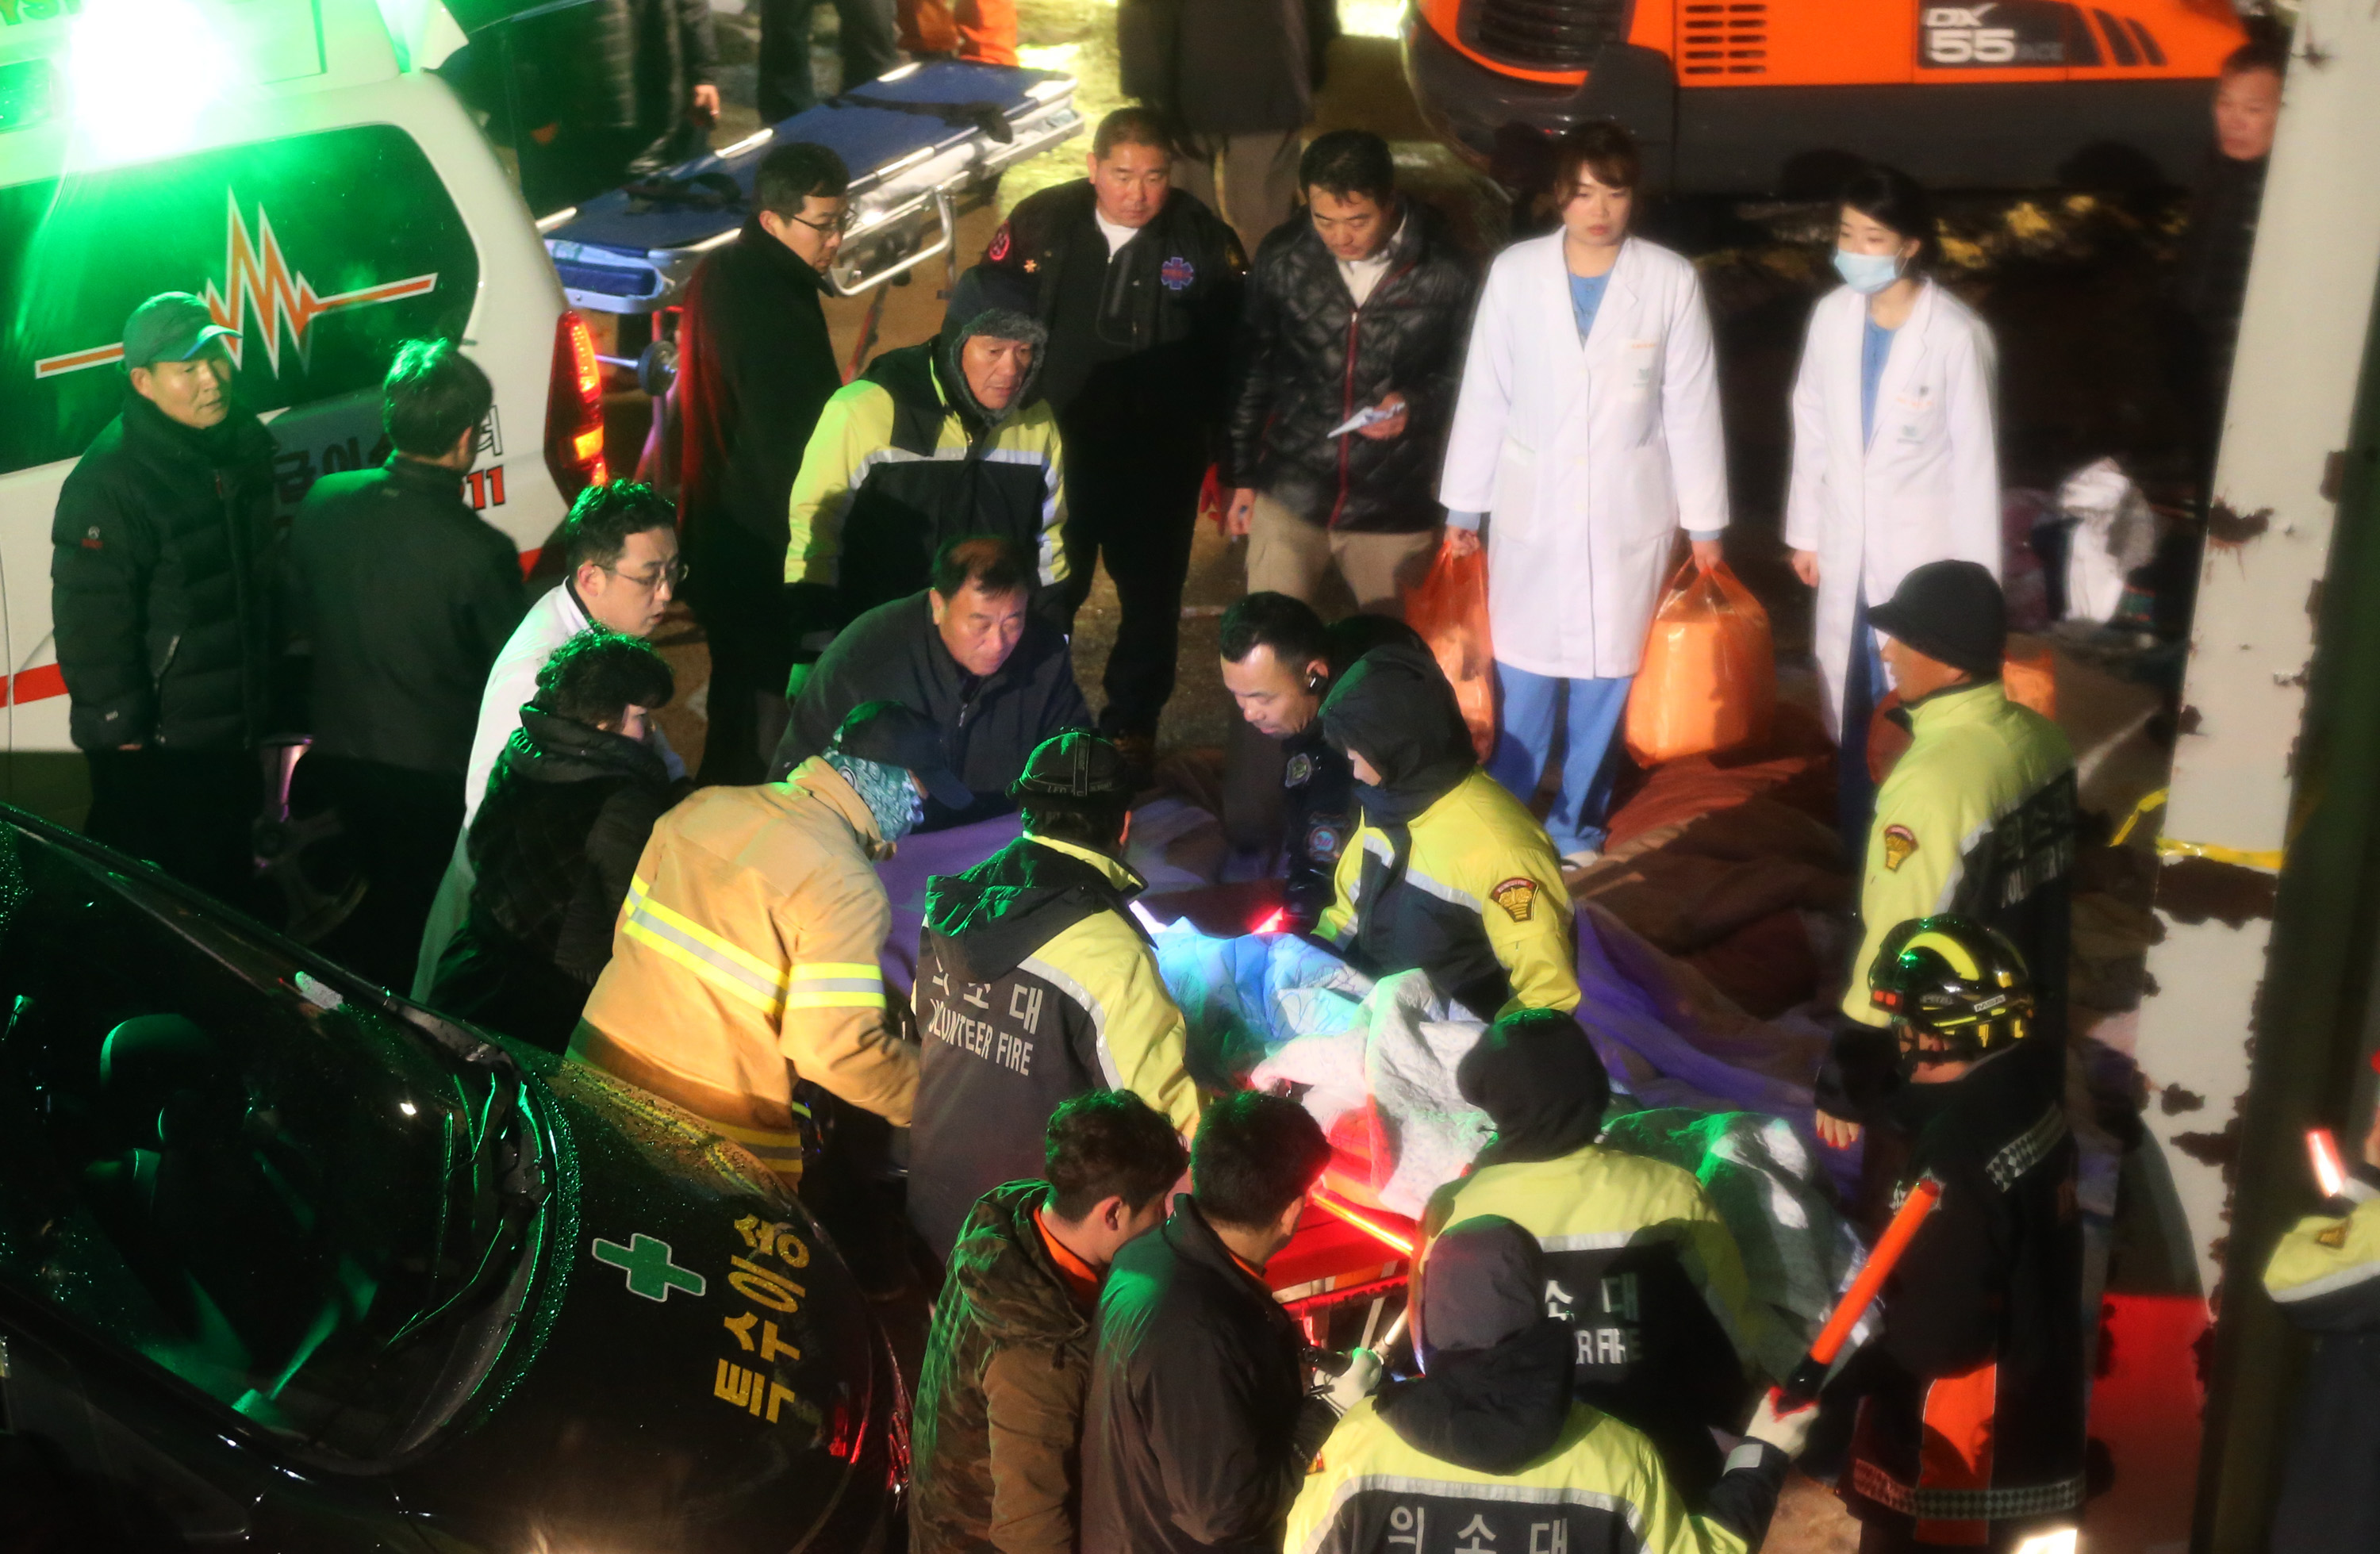 Rescue workers carry a victim, medical condition unknown, from a collapsed resort building in Gyeongju, South Korea, Monday, Feb. 17, 2014. South Korean police and news reports say that dozens of university students are feared trapped after a building's roof collapsed because of recent heavy snowfall. (AP Photo/Yonhap, Lee Sang-hyun) Korea Out